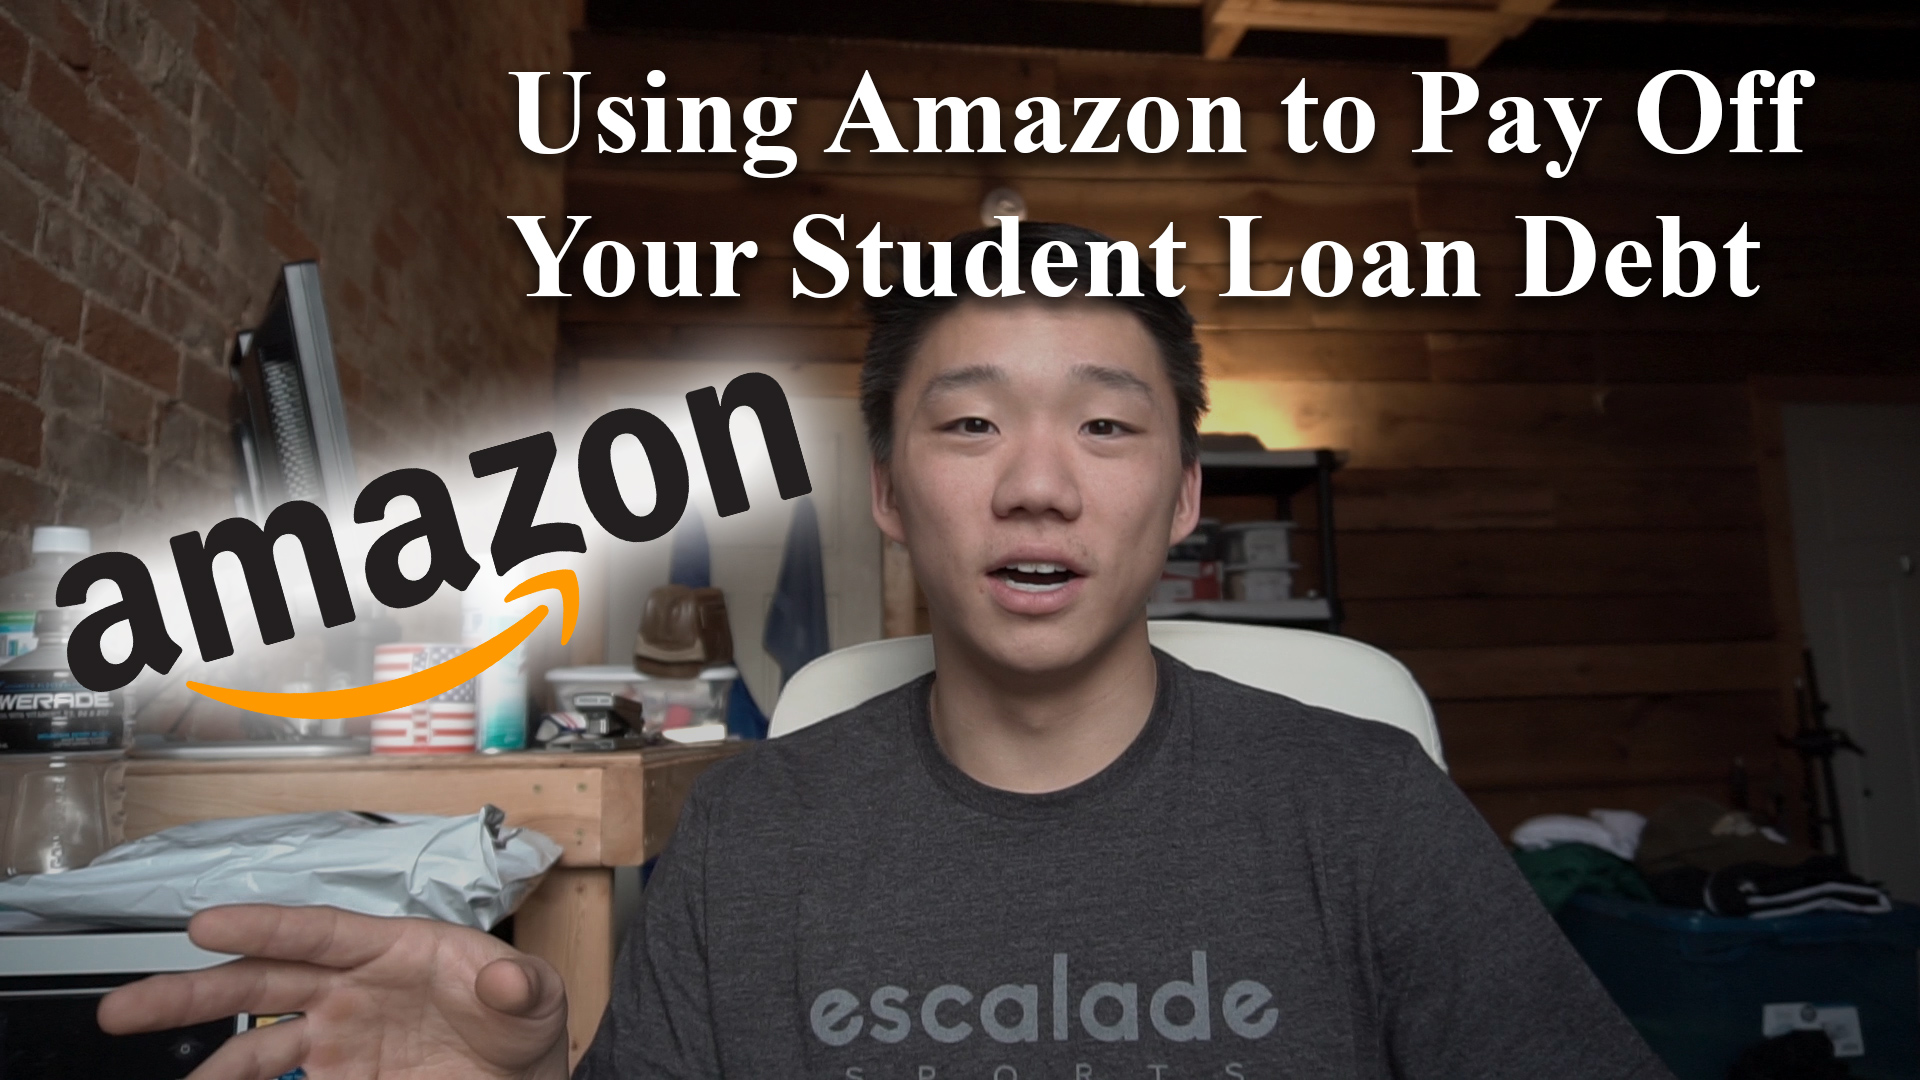 Using Amazon to Pay Off Your Student Loan Debt